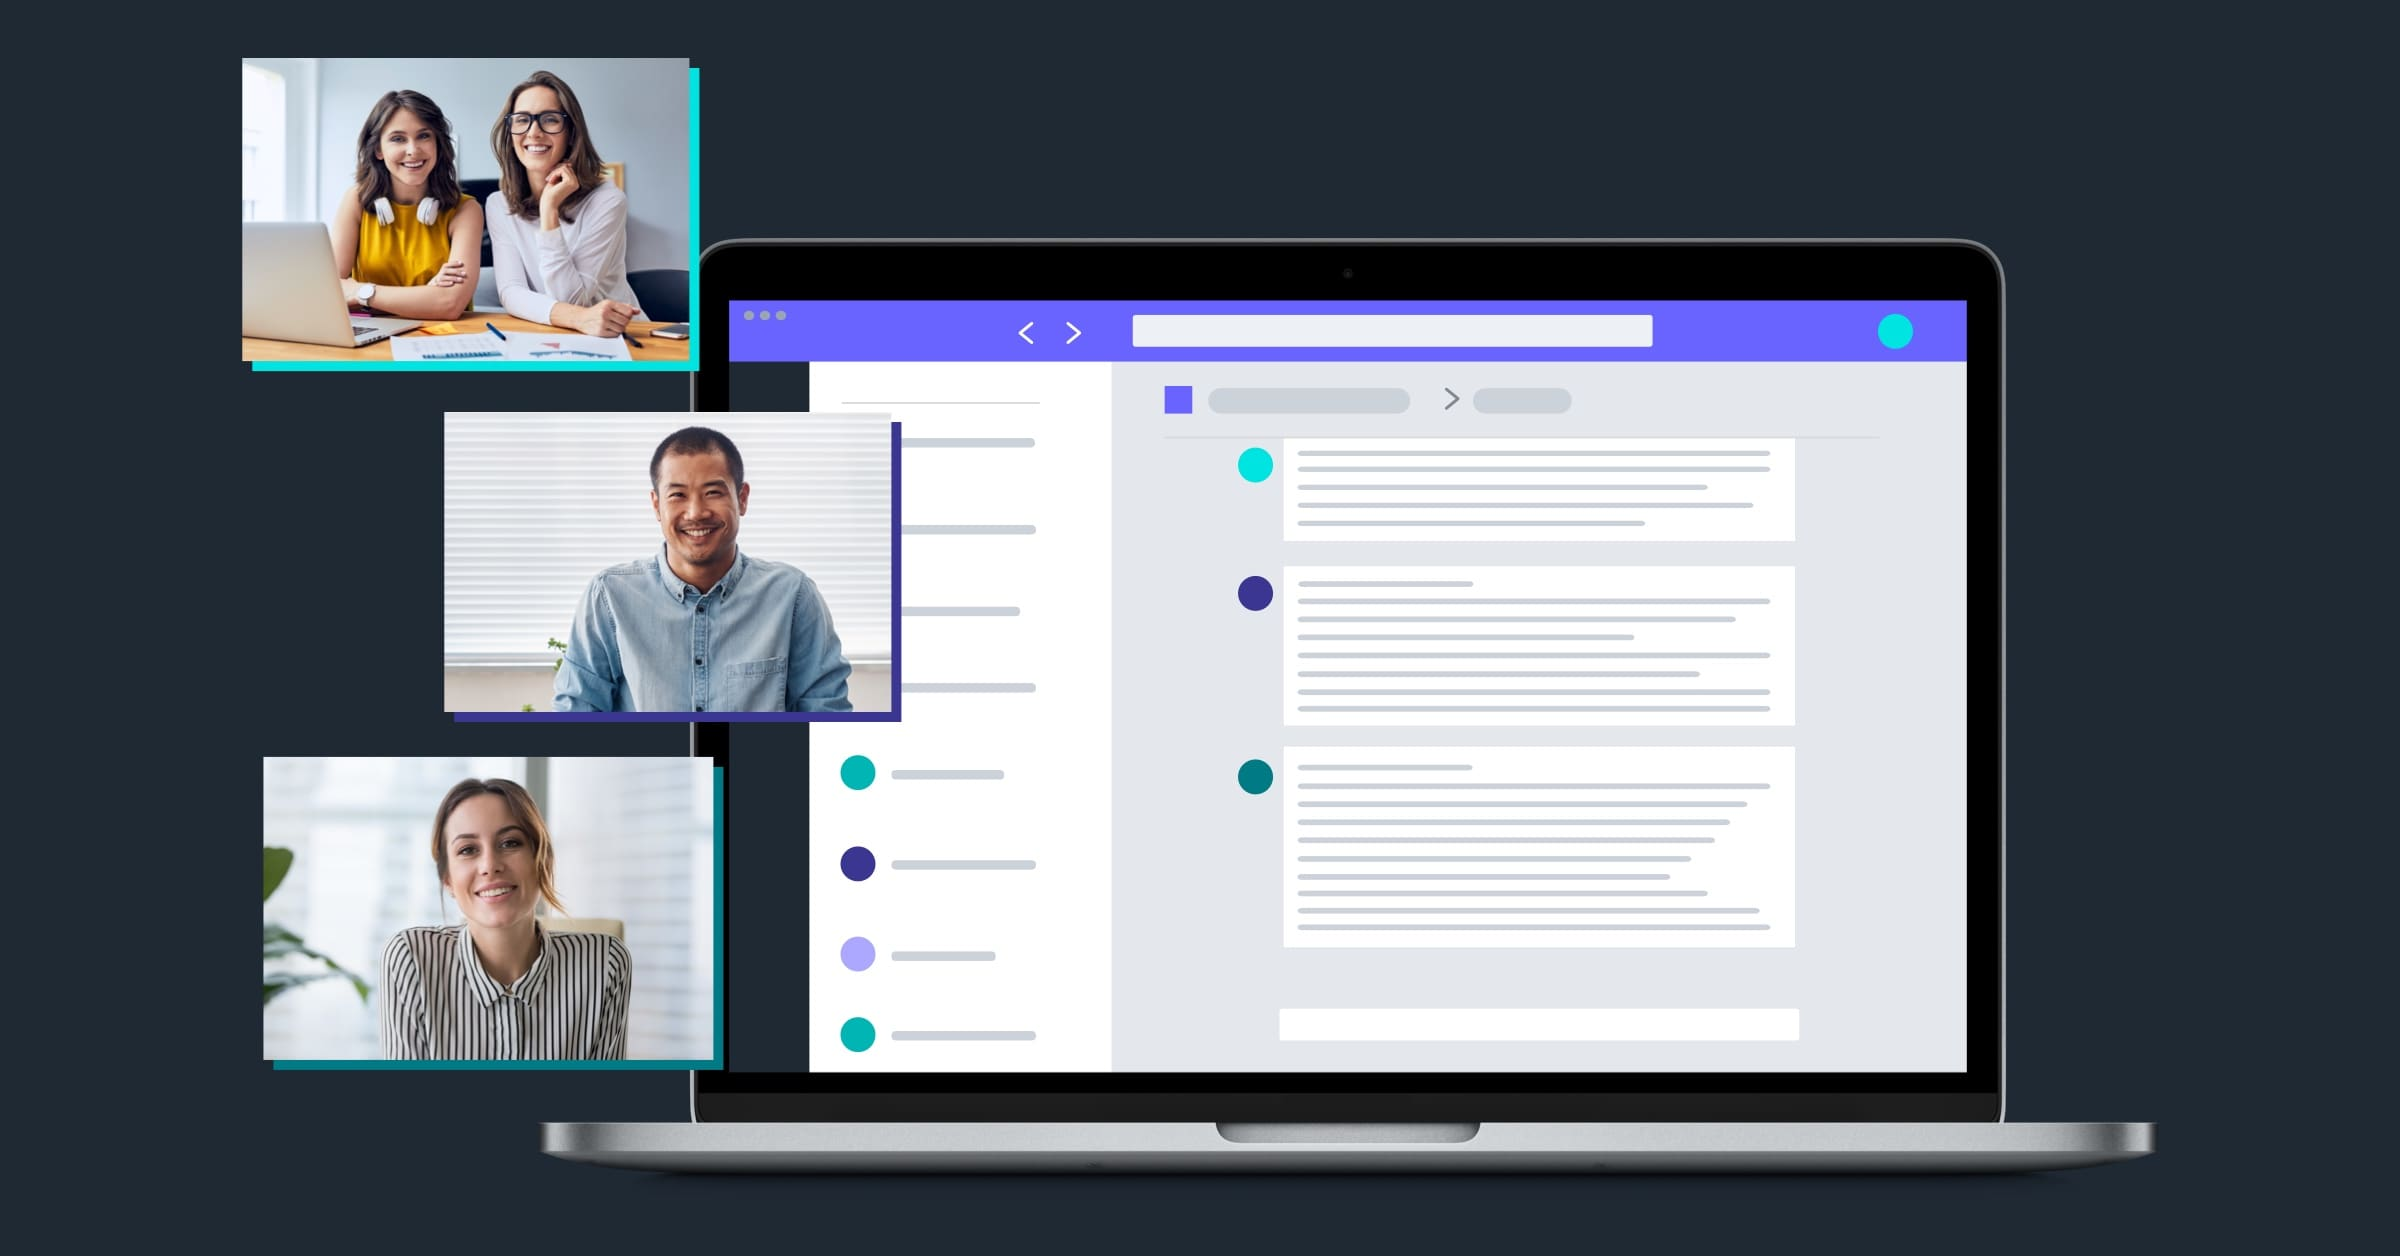 Microsoft Teams Video Conference Solution: How to Integrate Lifesize and Microsoft Teams